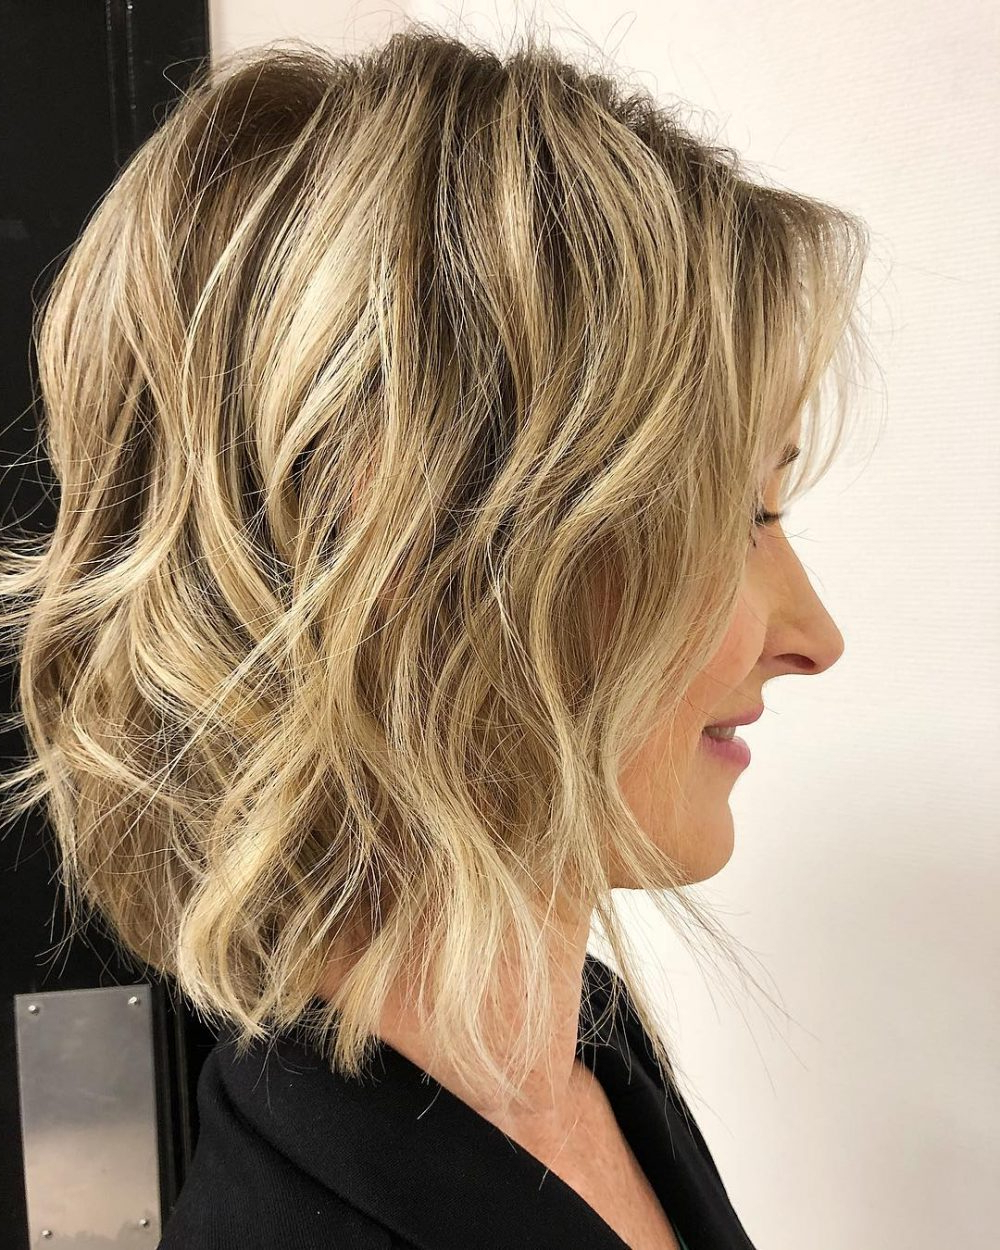 43 Perfect Short Hairstyles For Fine Hair In 2018 With Regard To Choppy Short Haircuts For Fine Hair (View 7 of 25)